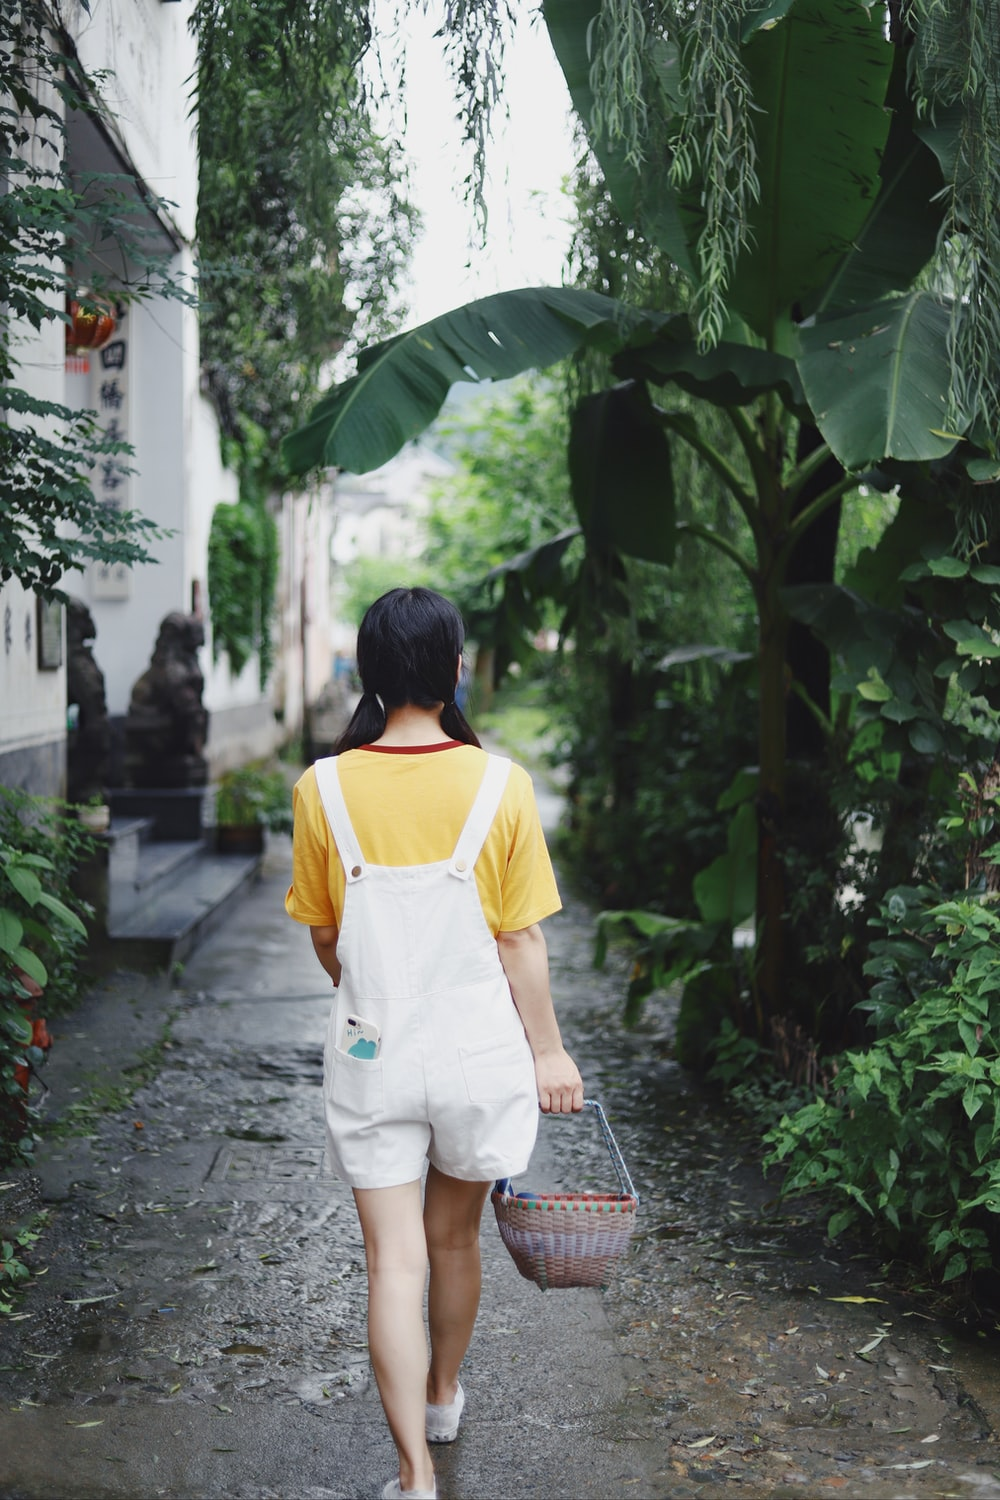 woman in white and yellow shirt walking on pathway